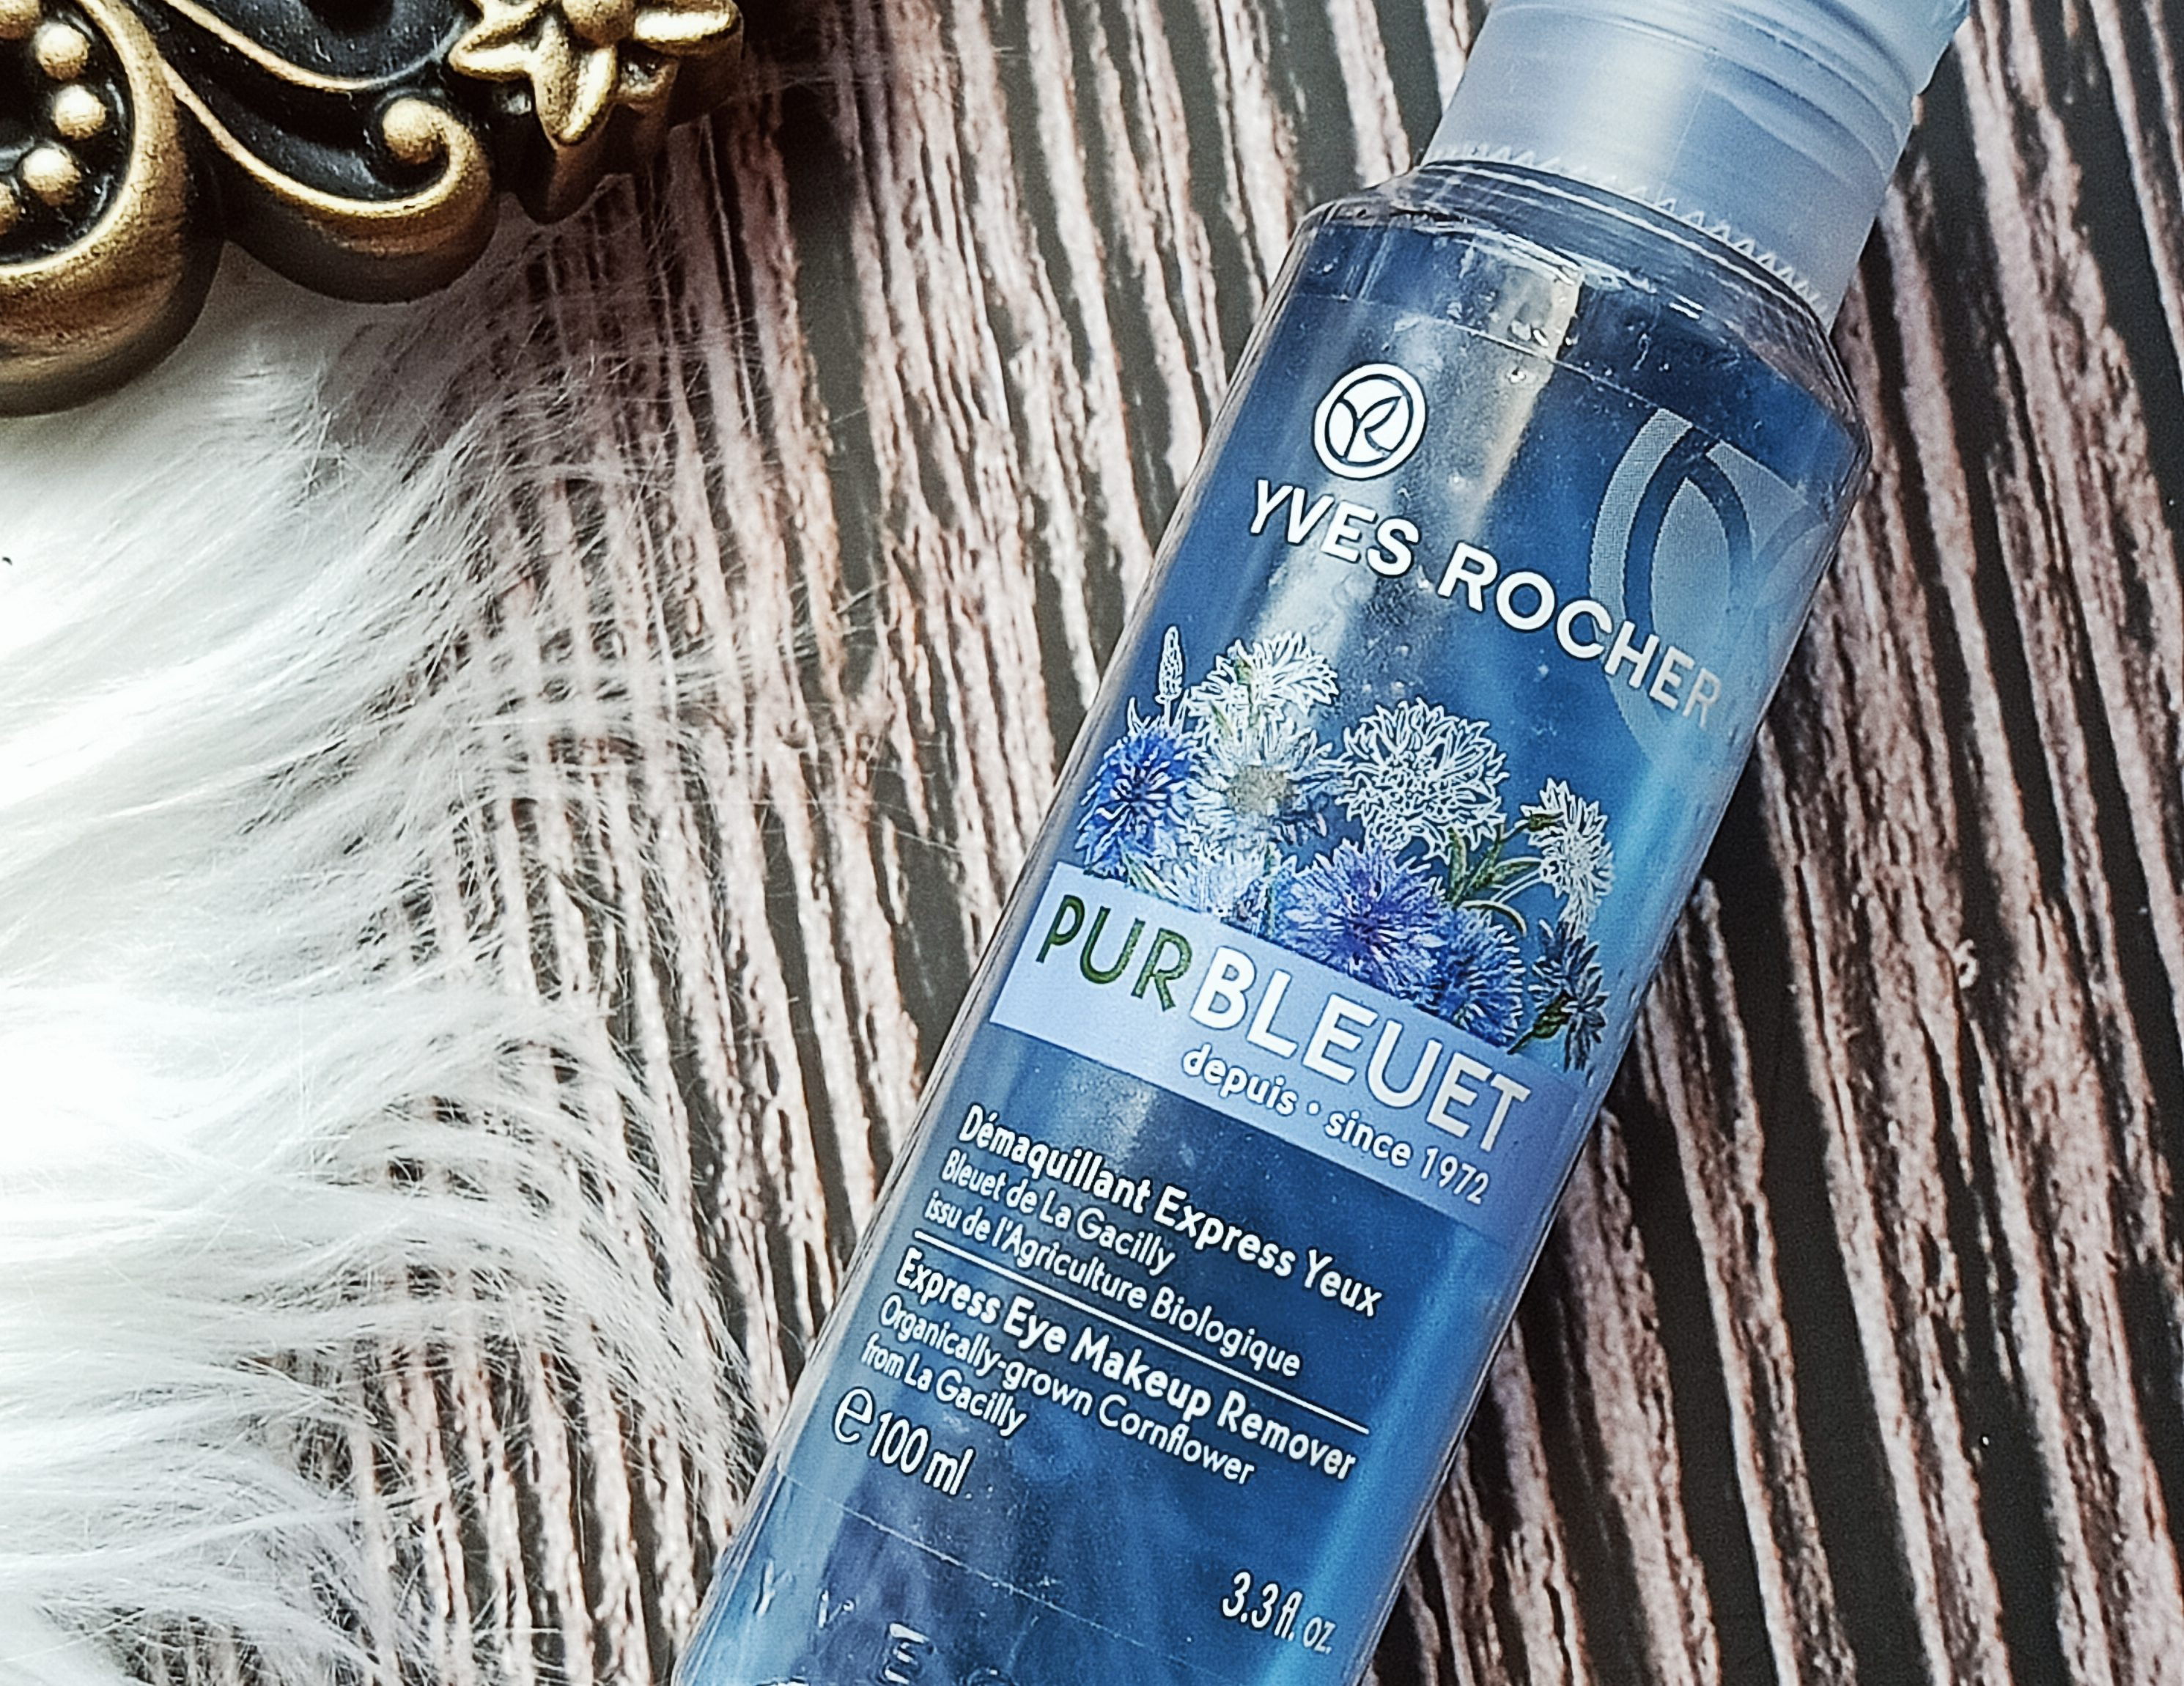 REVIEW | Yves Rocher Pur Bleuet Express Eye Makeup Remover